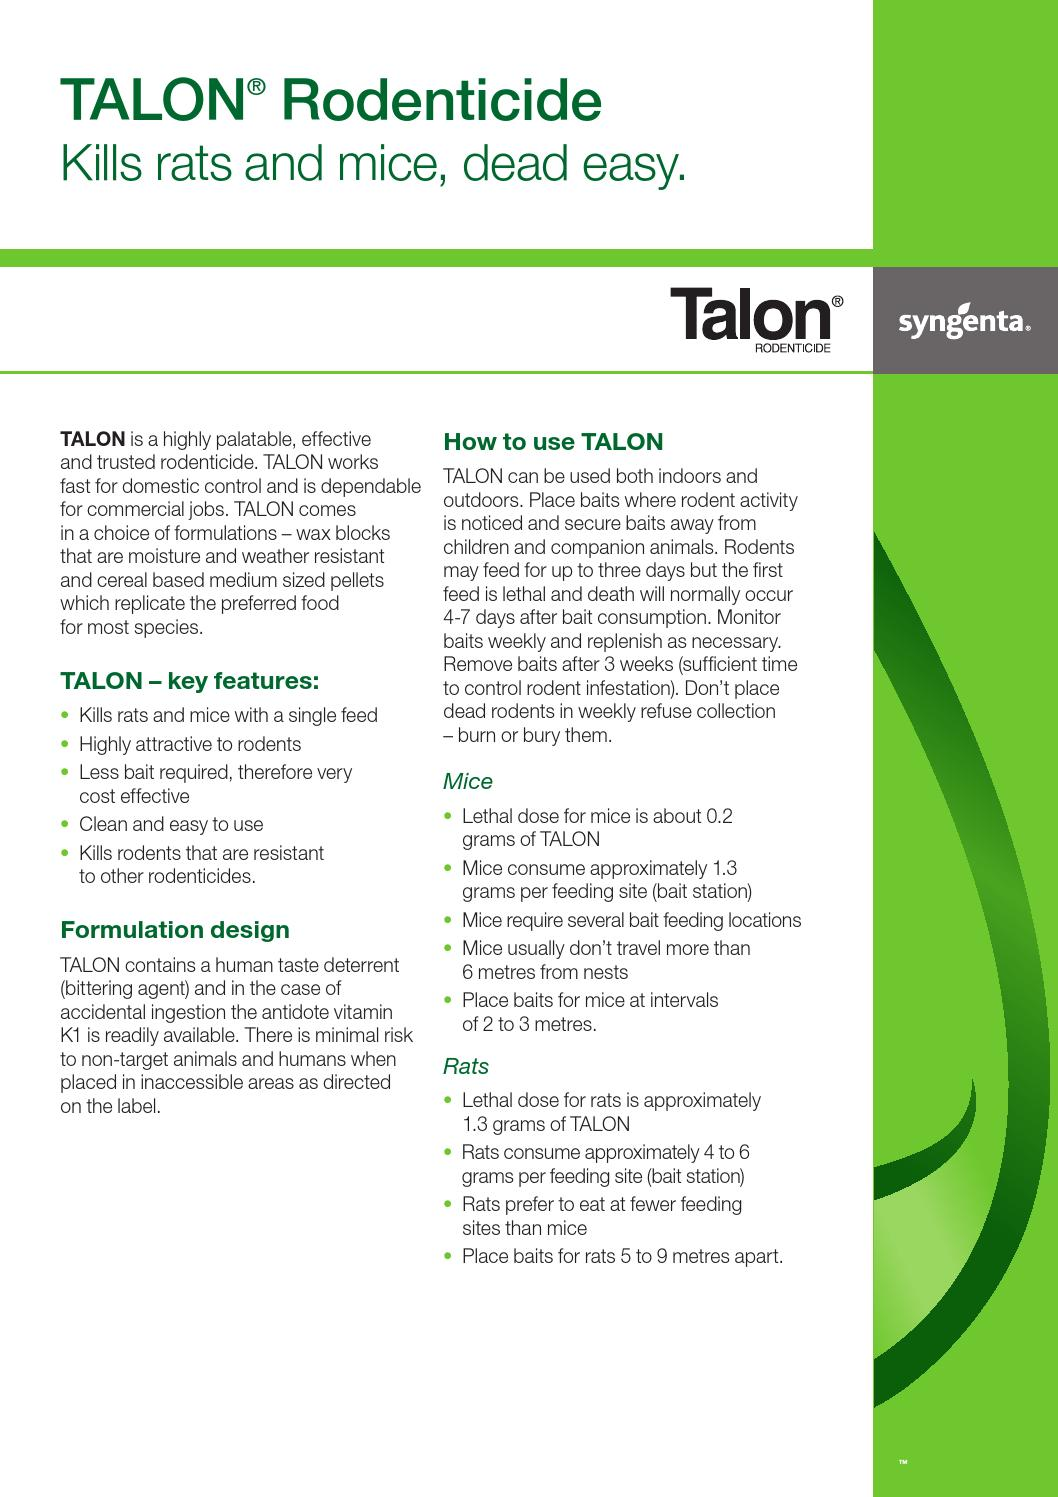 Talon rodenticide range flyer usage tips by Reachcycle - issuu